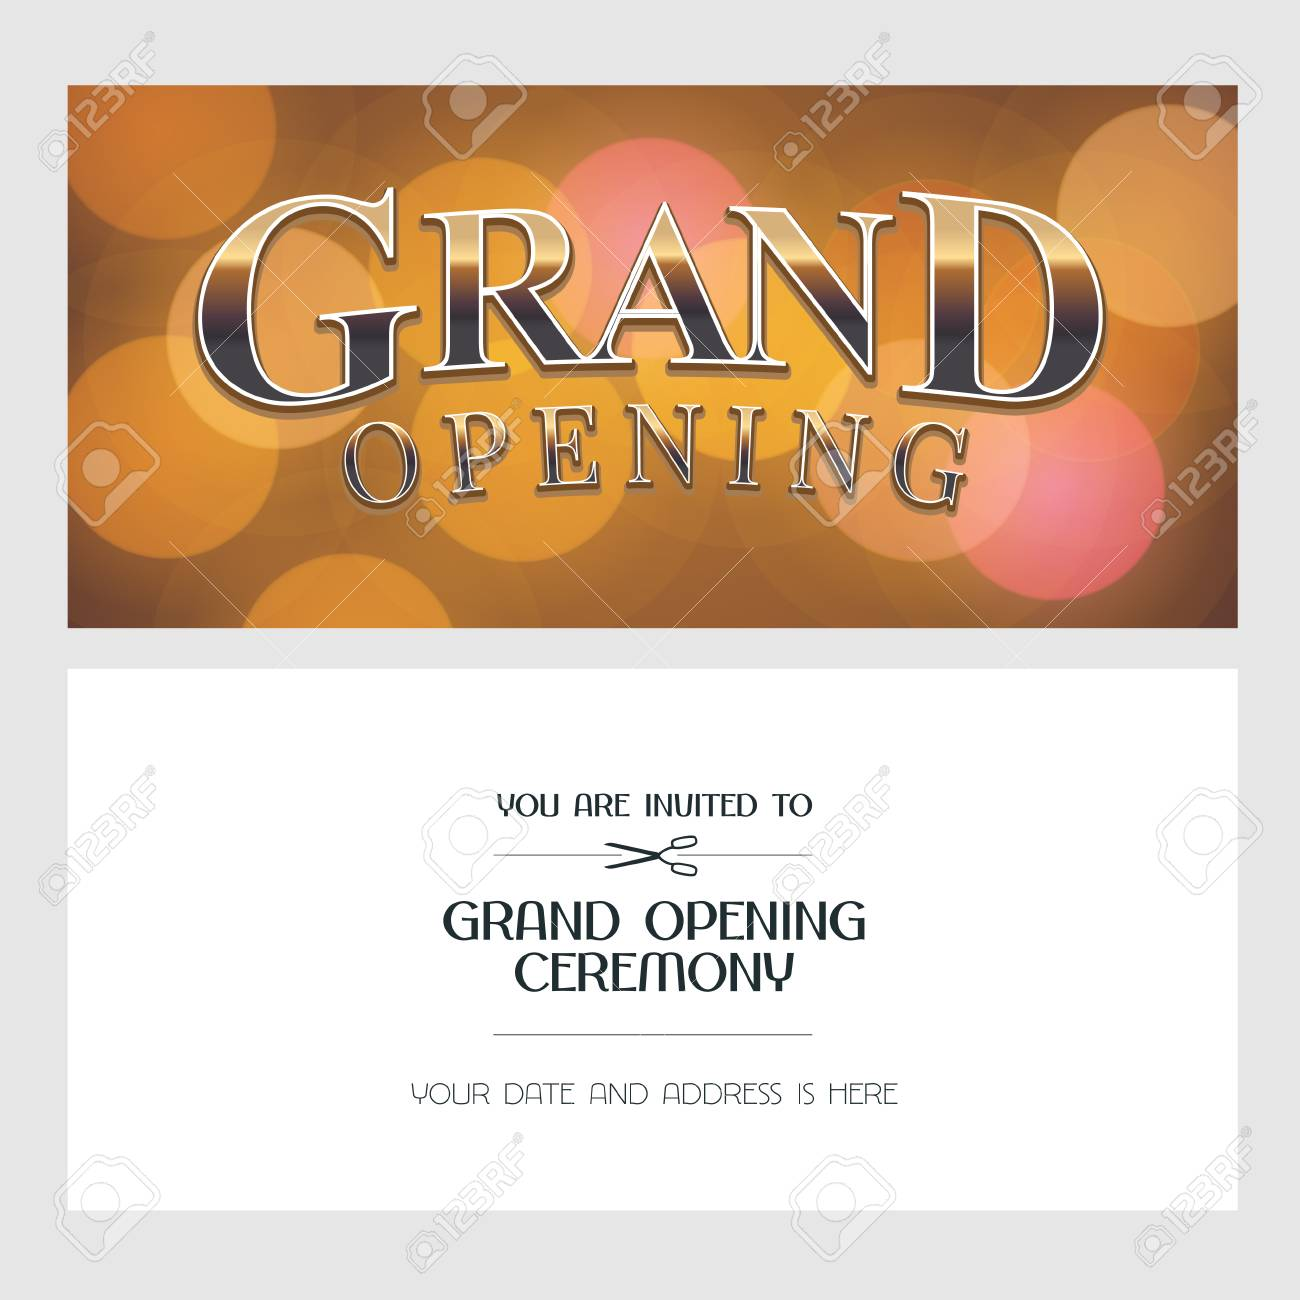 Grand Opening Vector Illustration Background Invitation Card